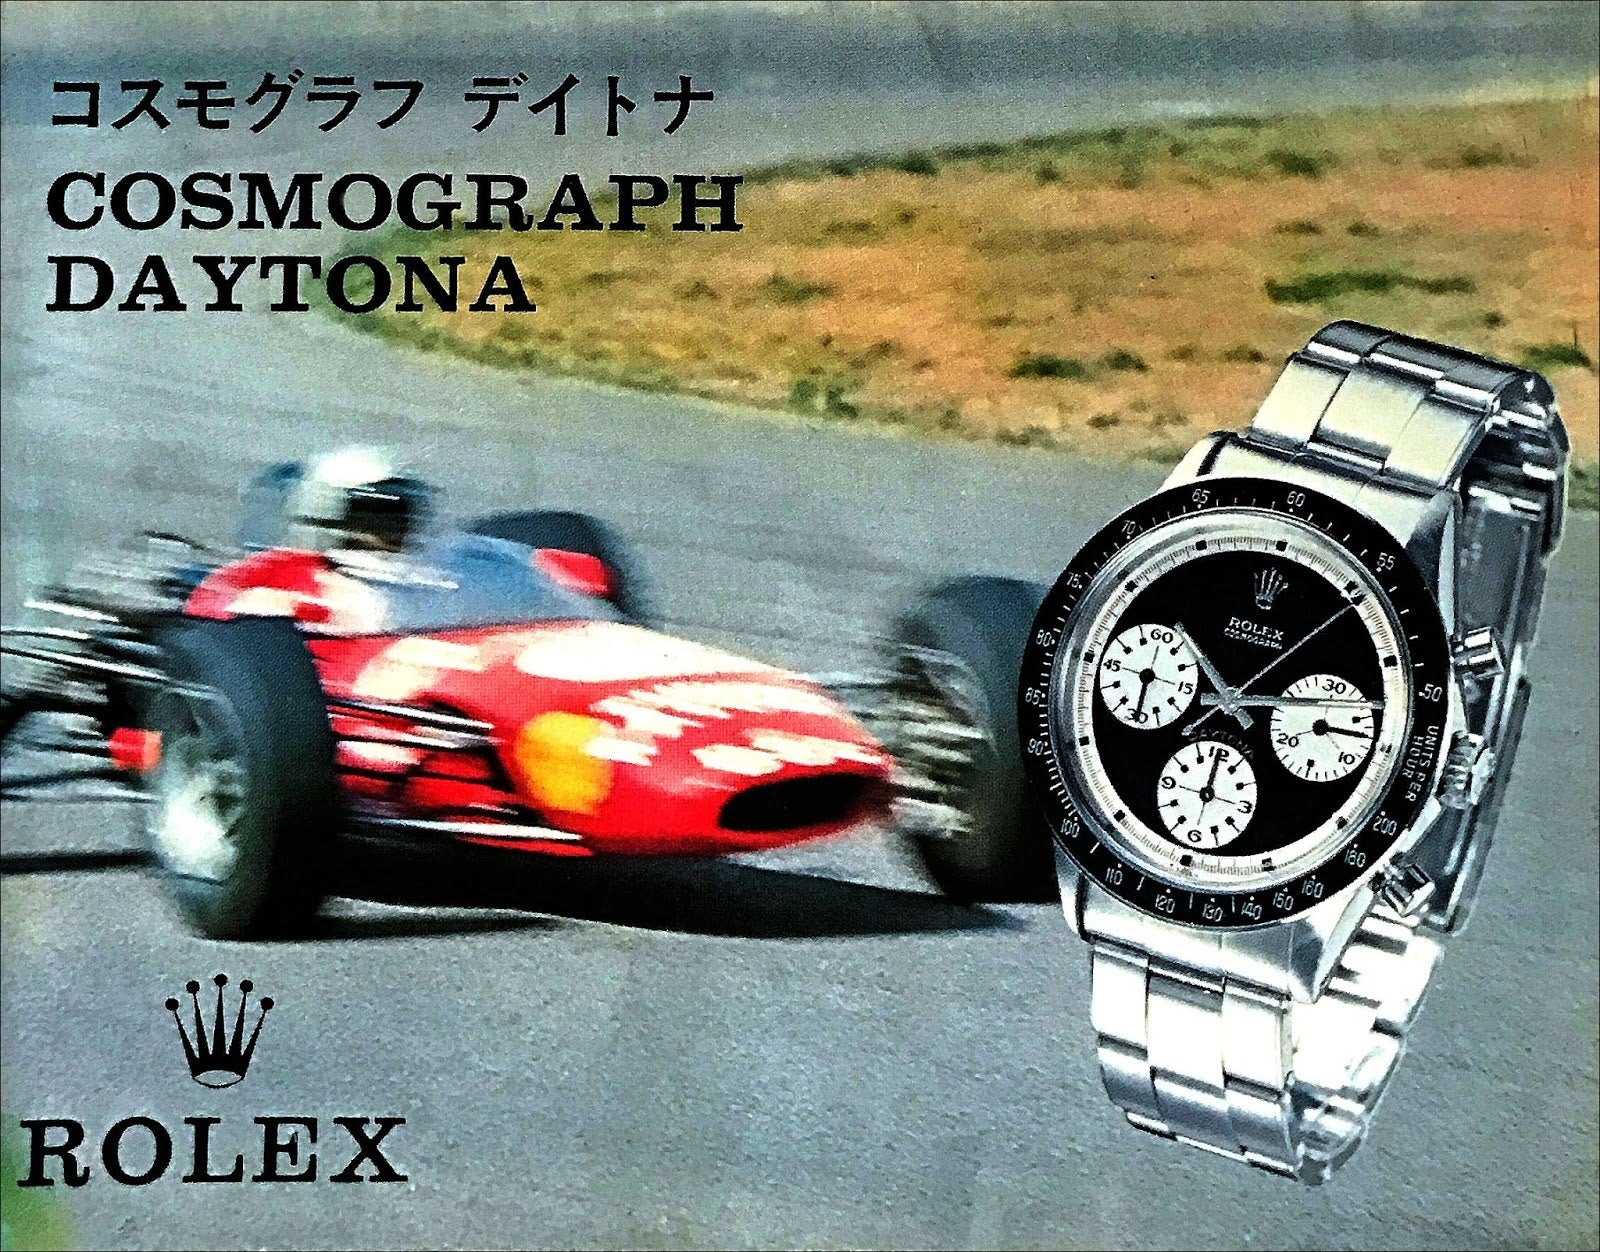 Rolex Daytona advertisement from 1972 featuring a racing car for the Japanese market for A Collected Man Lonodn